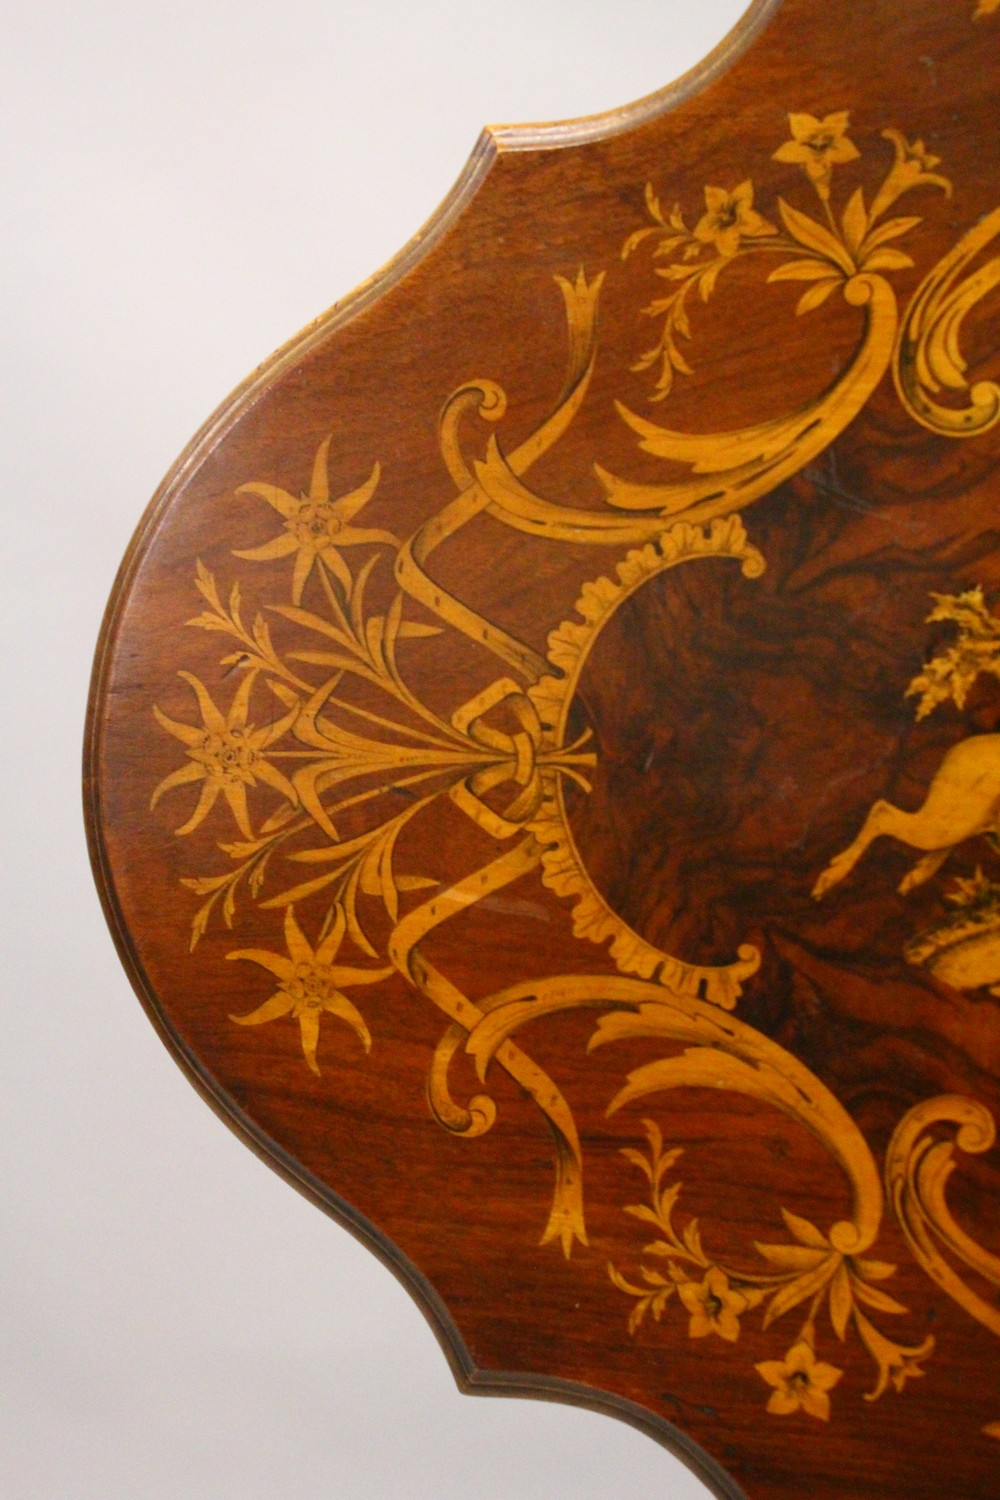 A LATE 19TH CENTURY BLACK FOREST INLAID TABLE. 2ft 1.5ins wide x 2ft 7ins high. - Image 6 of 14